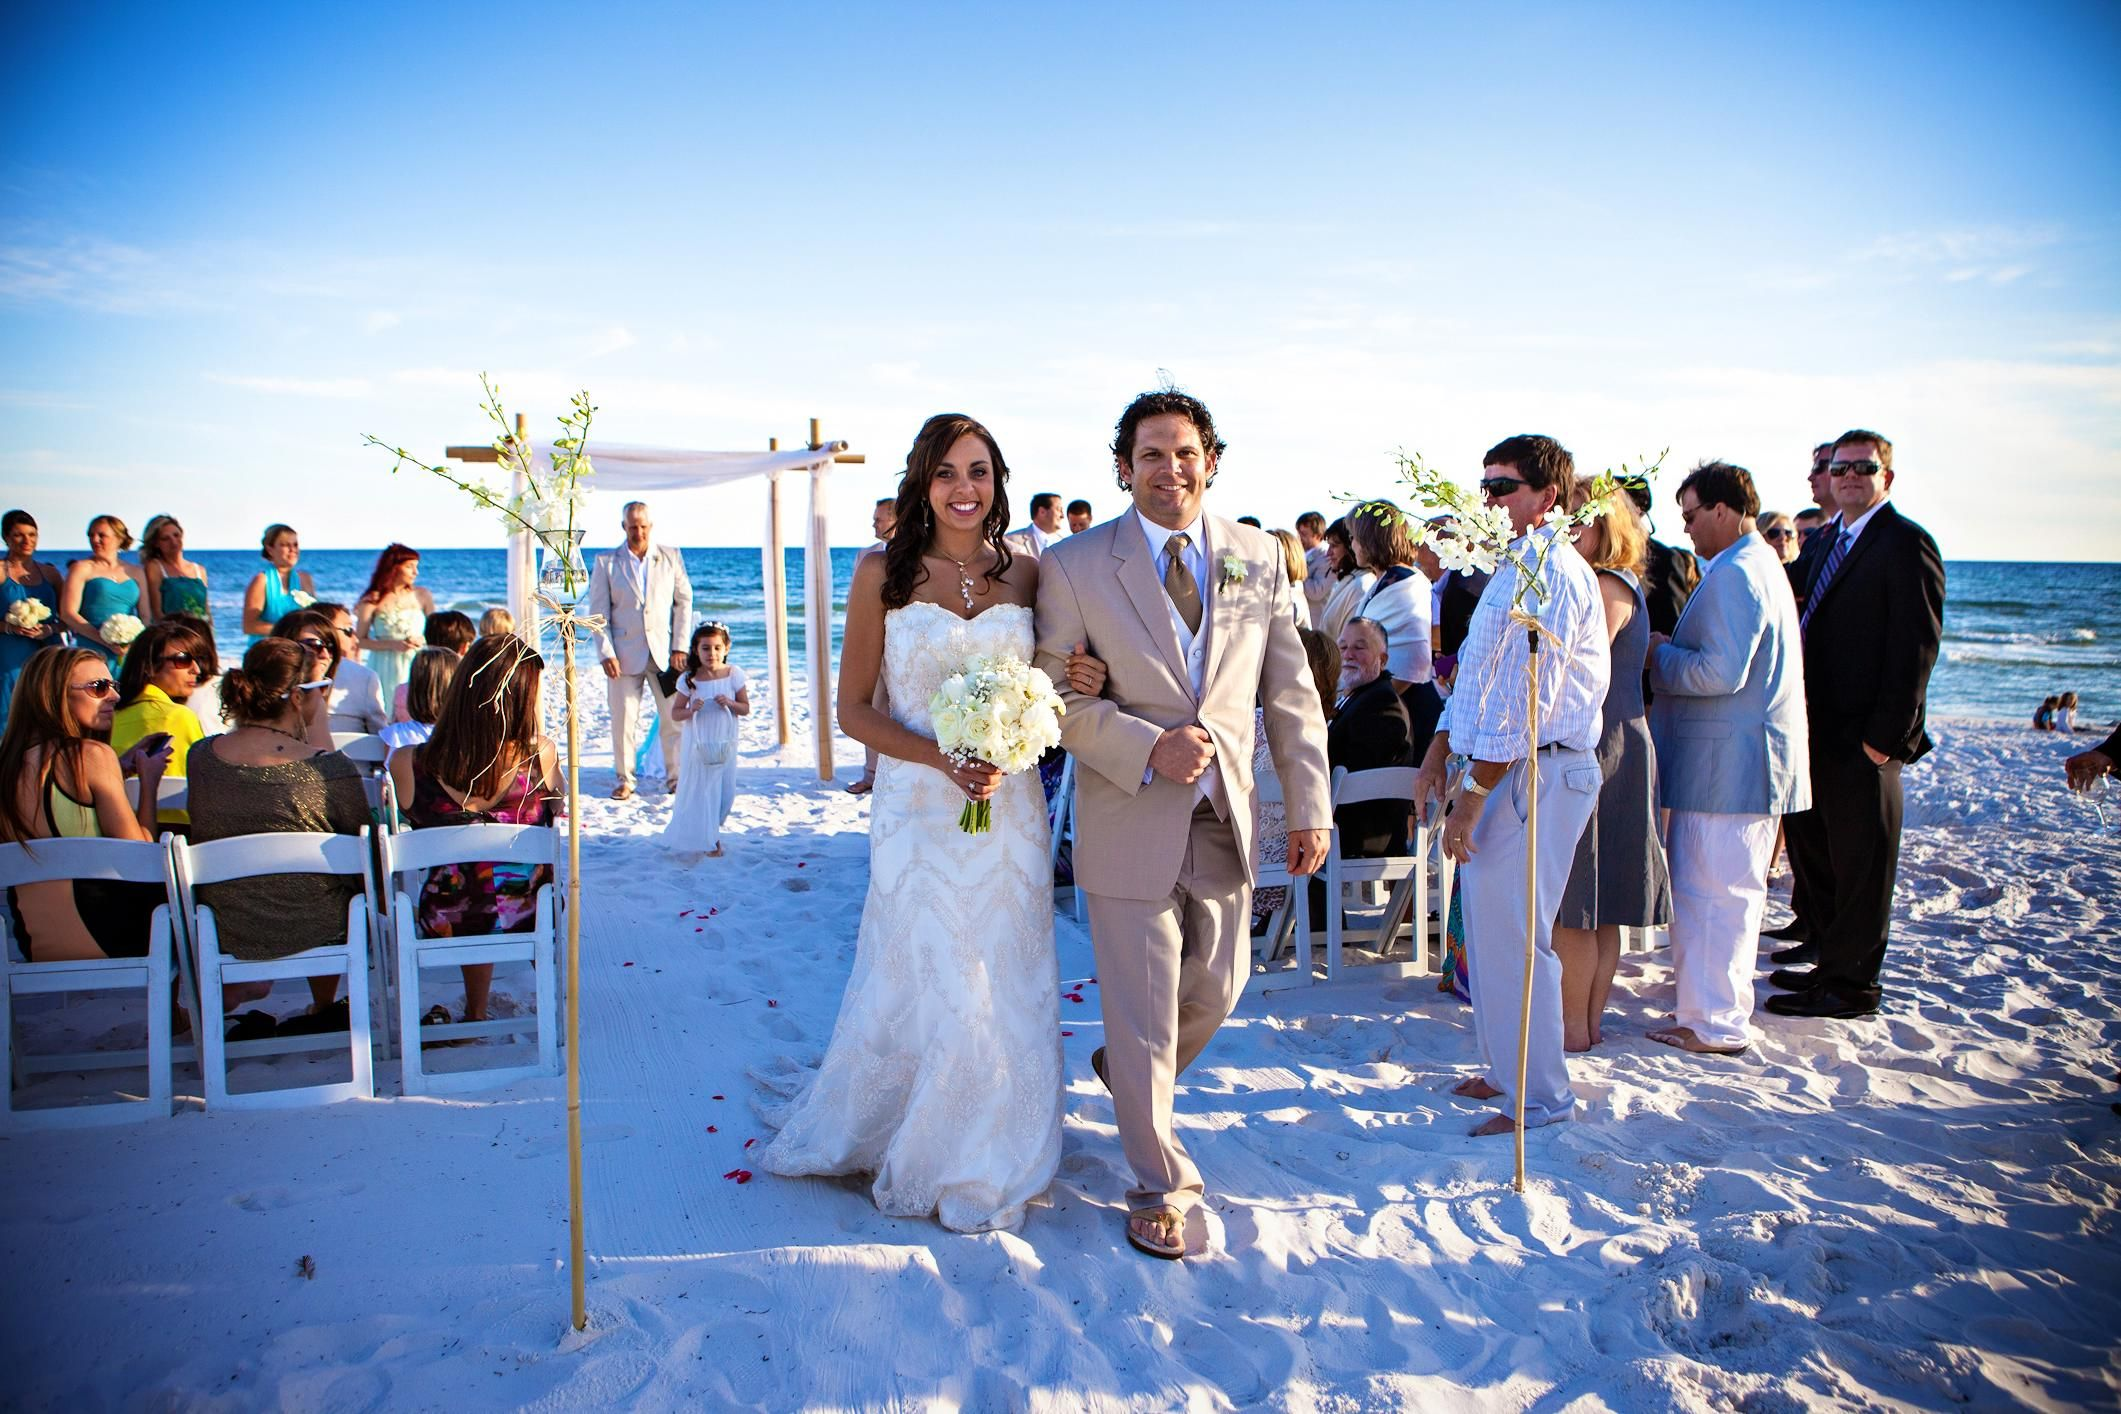 Our Destin Wedding Planners Have Been Planning Weddings For Years With Couples From All Across The